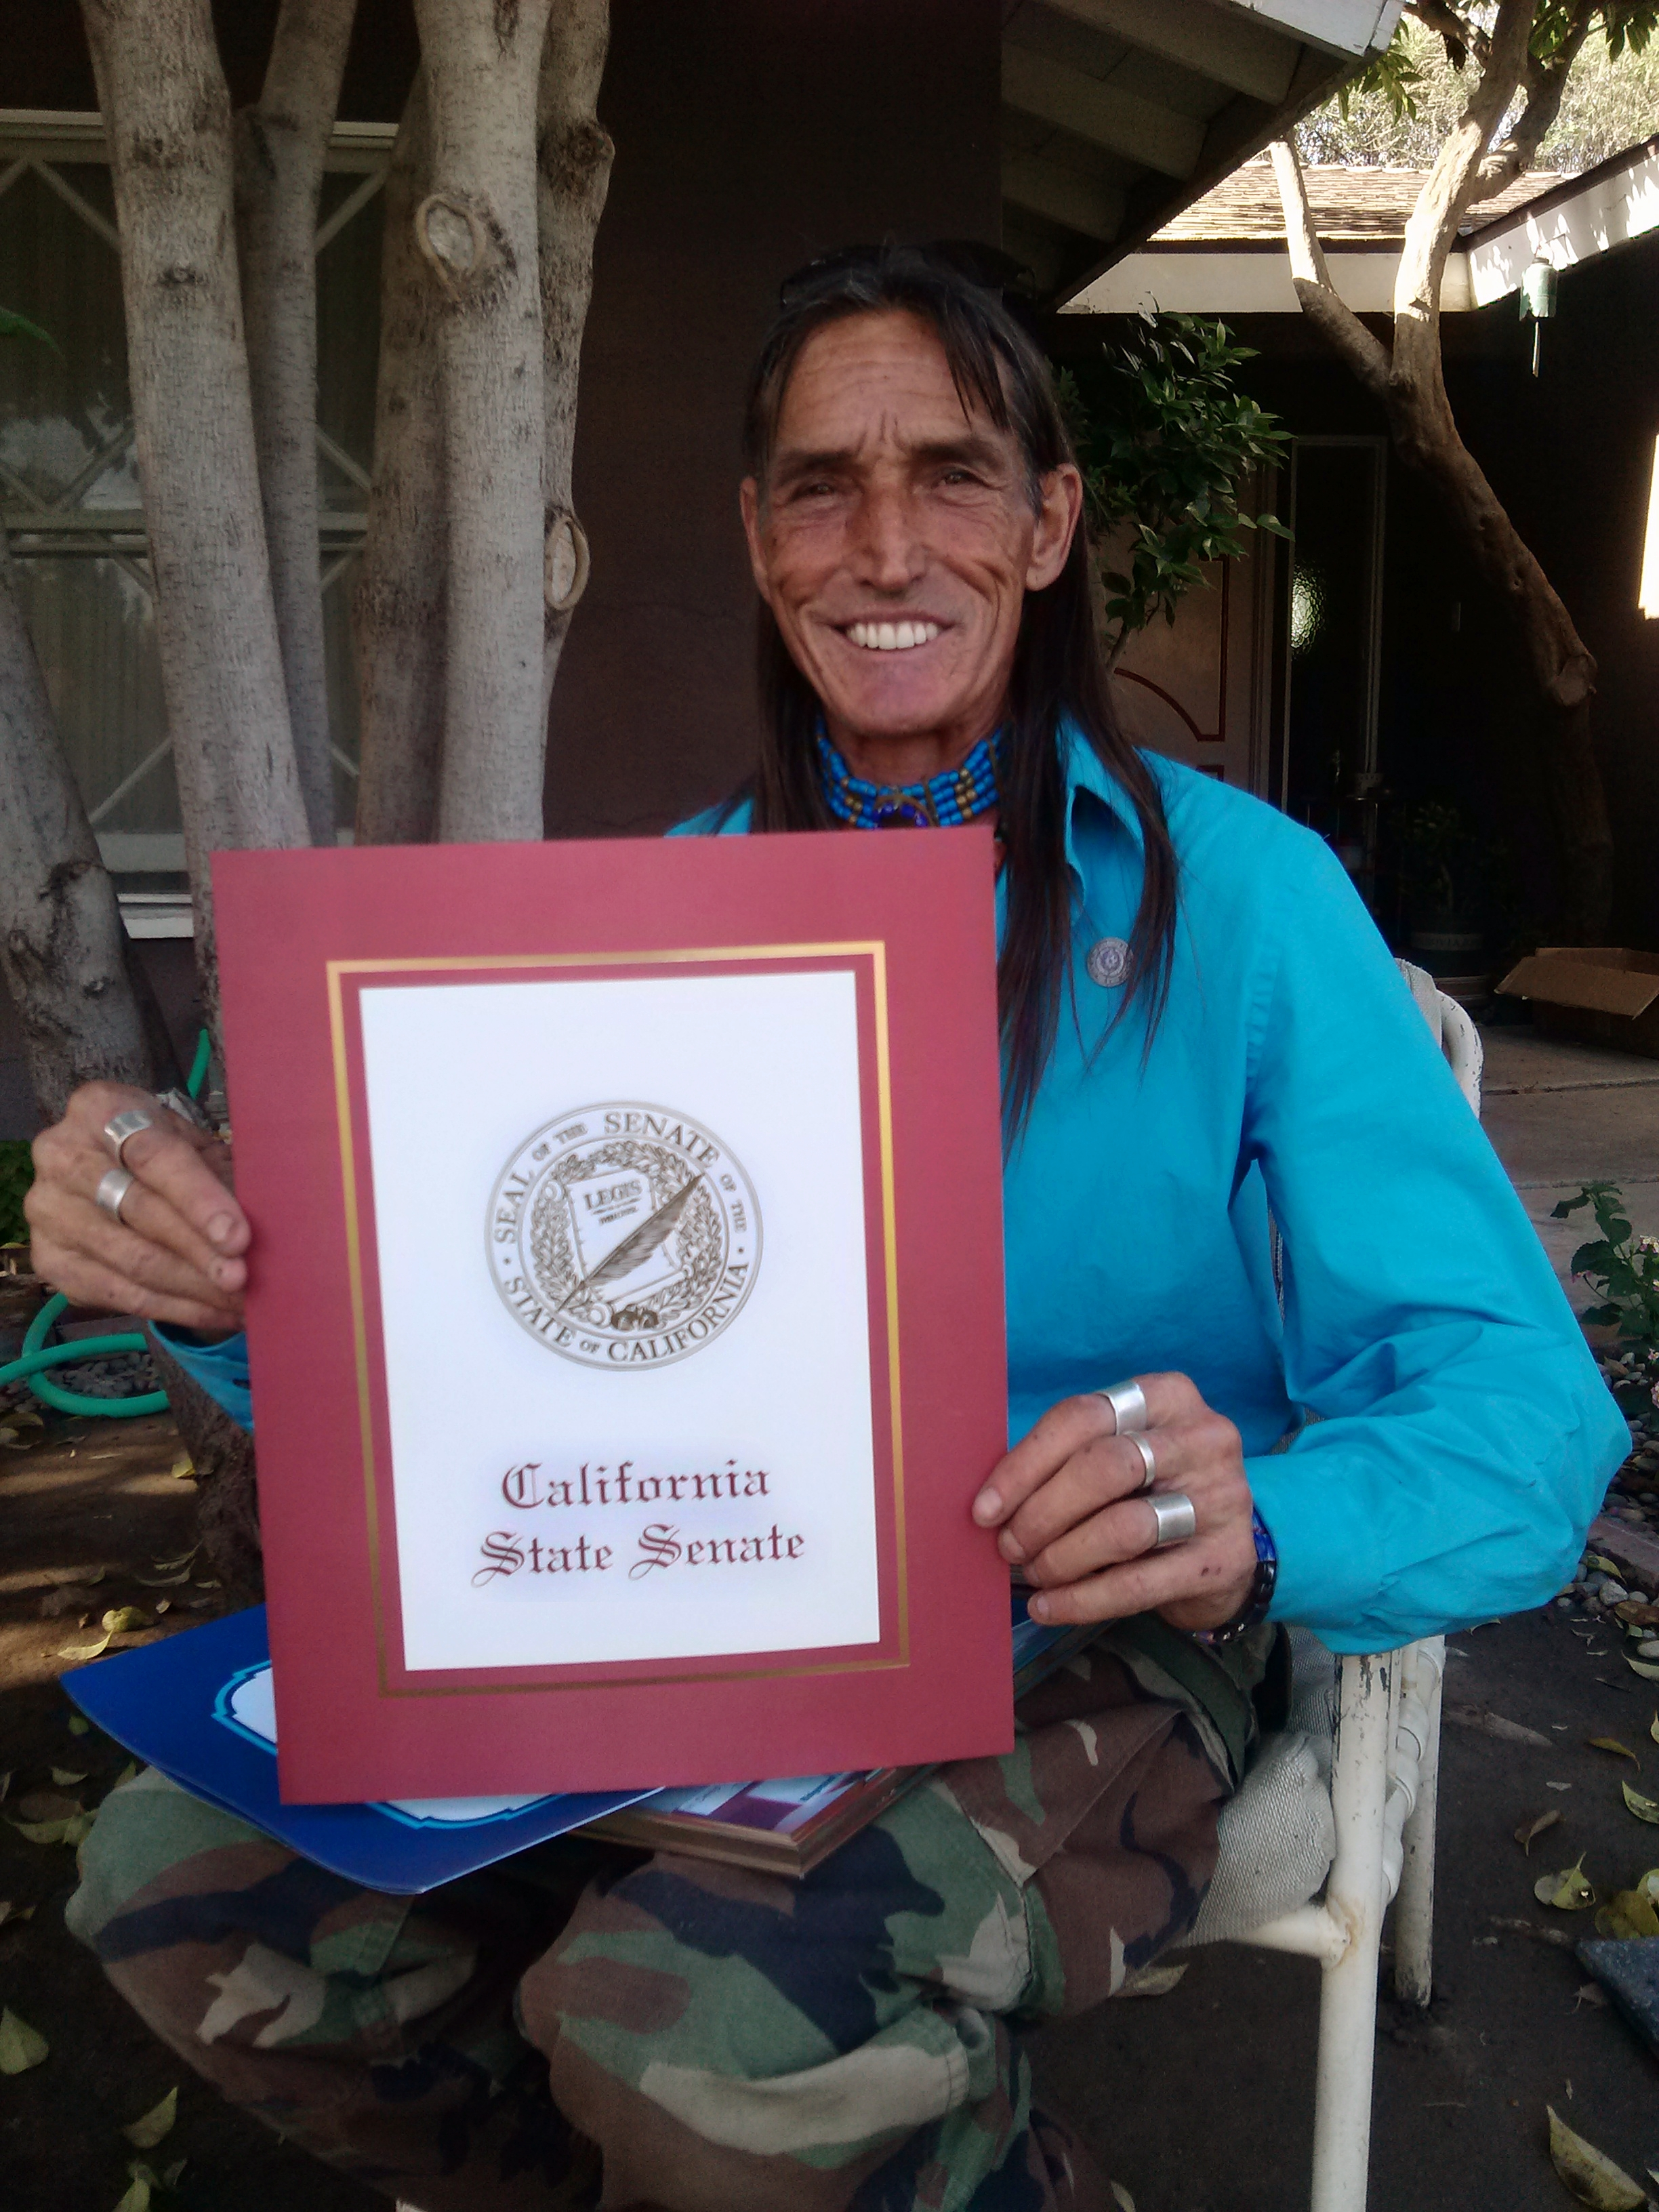 Richard Lonewolf with California State Senate Award